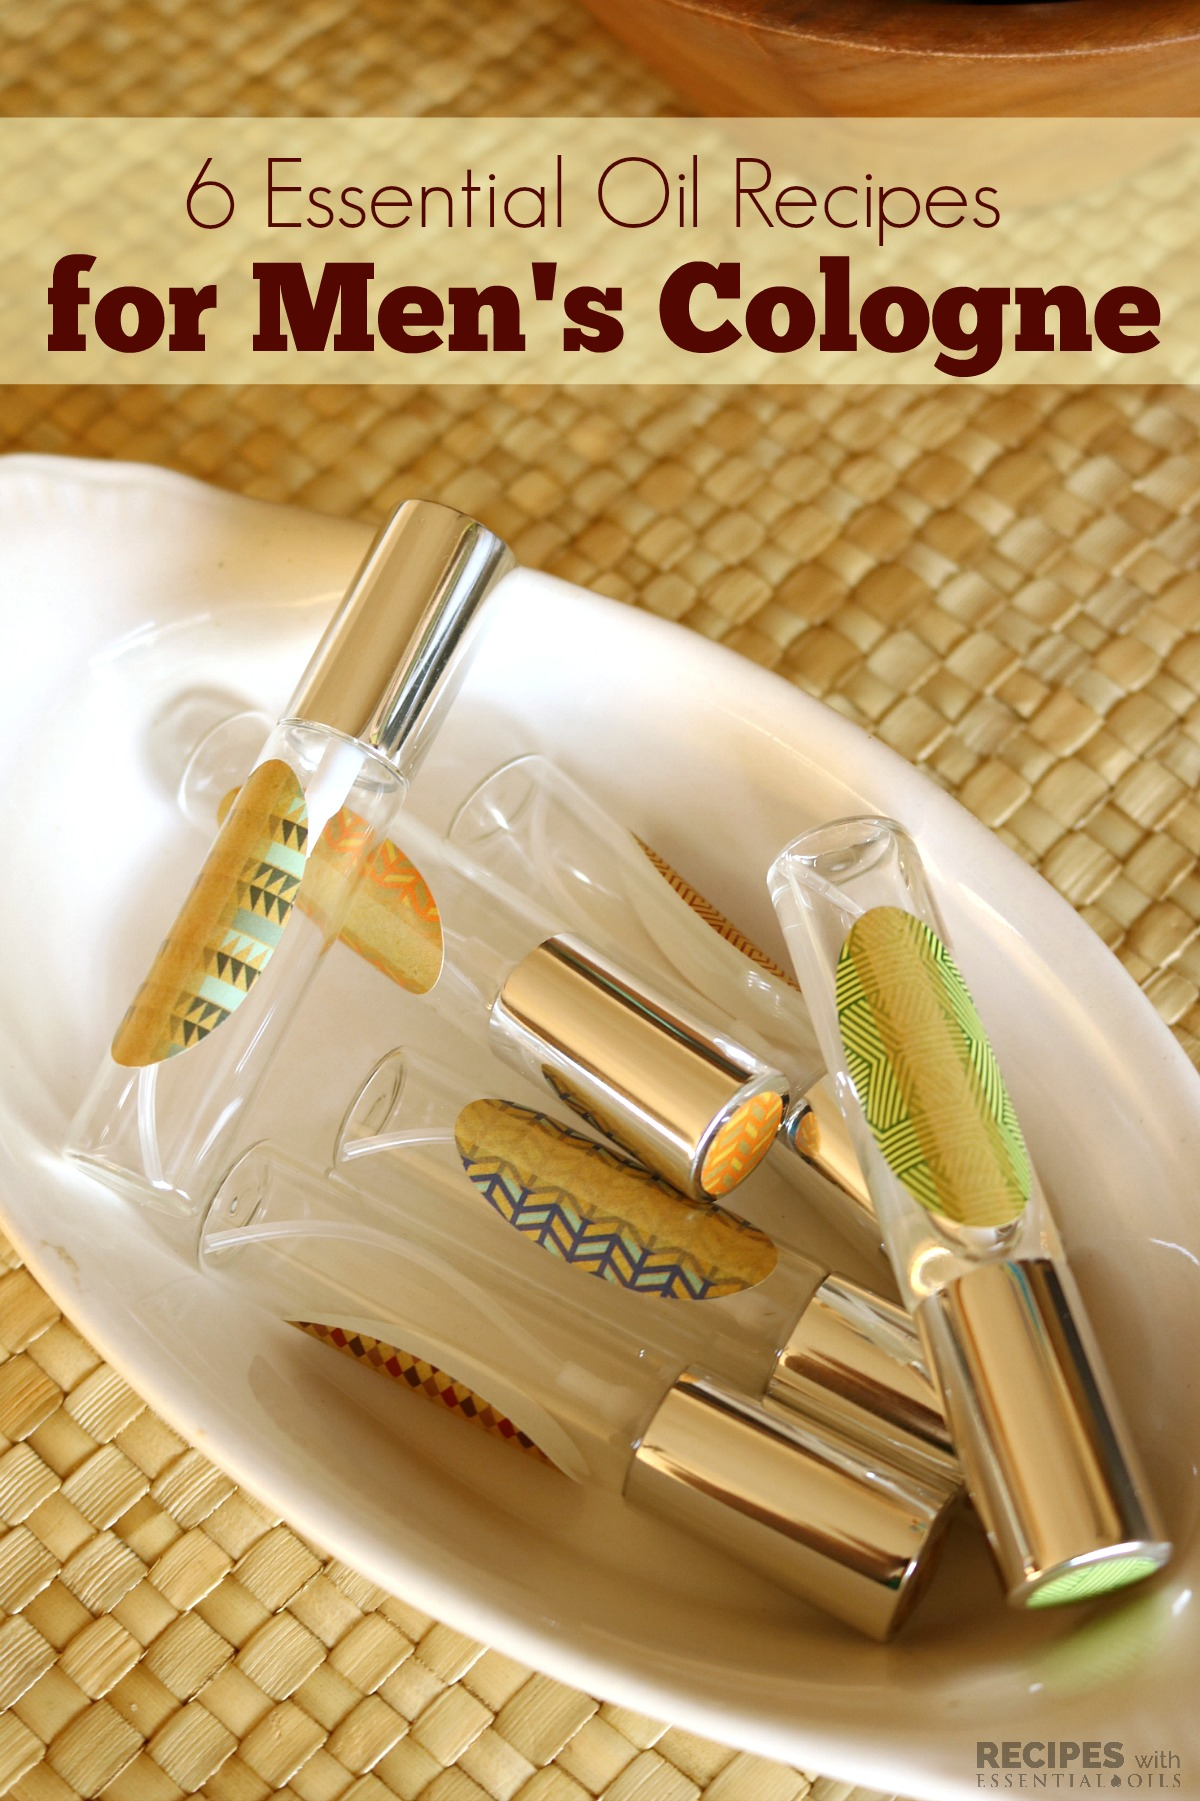 Essential Oil Recipes for Men's Cologne